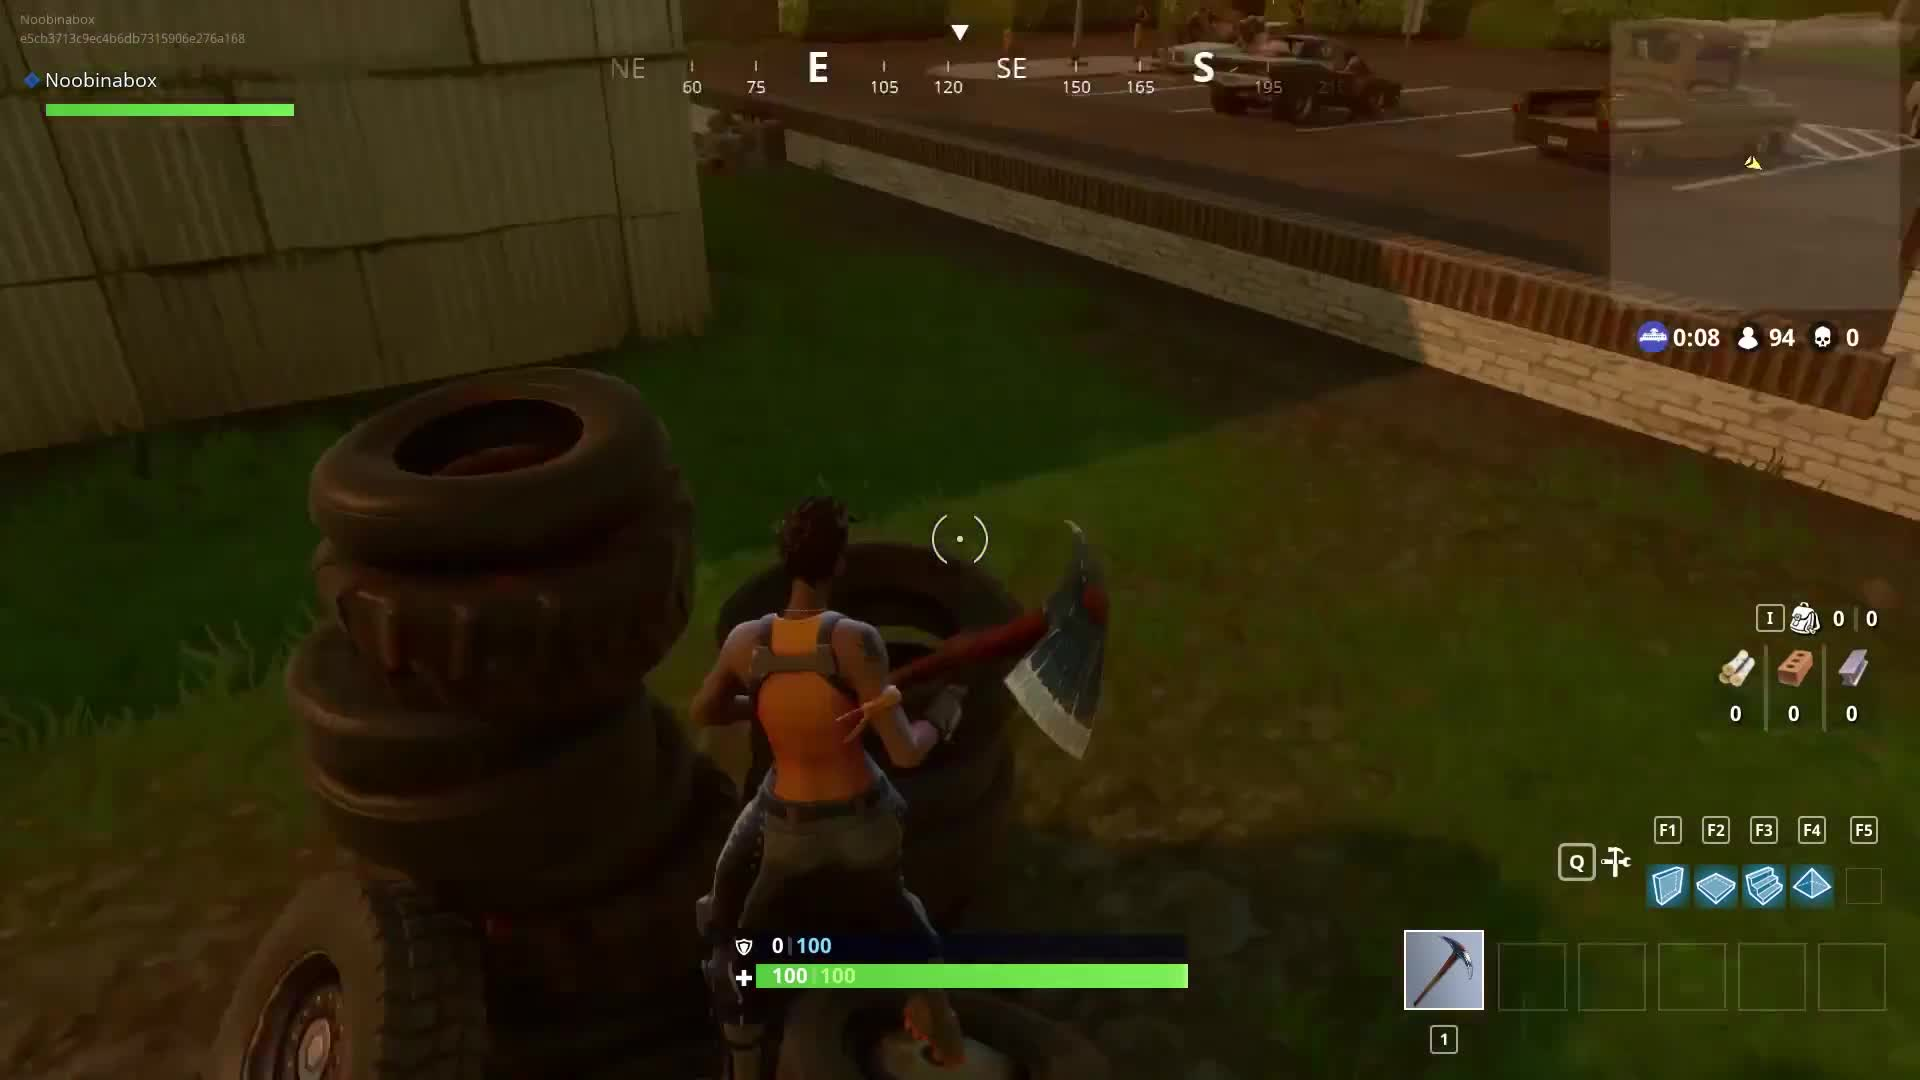 Battle Royale, Fortnite, Fortnite Battle Royale, FortniteBR, Noobinabox, Extra Bouncy Tires + Rubber Banding = This? GIFs